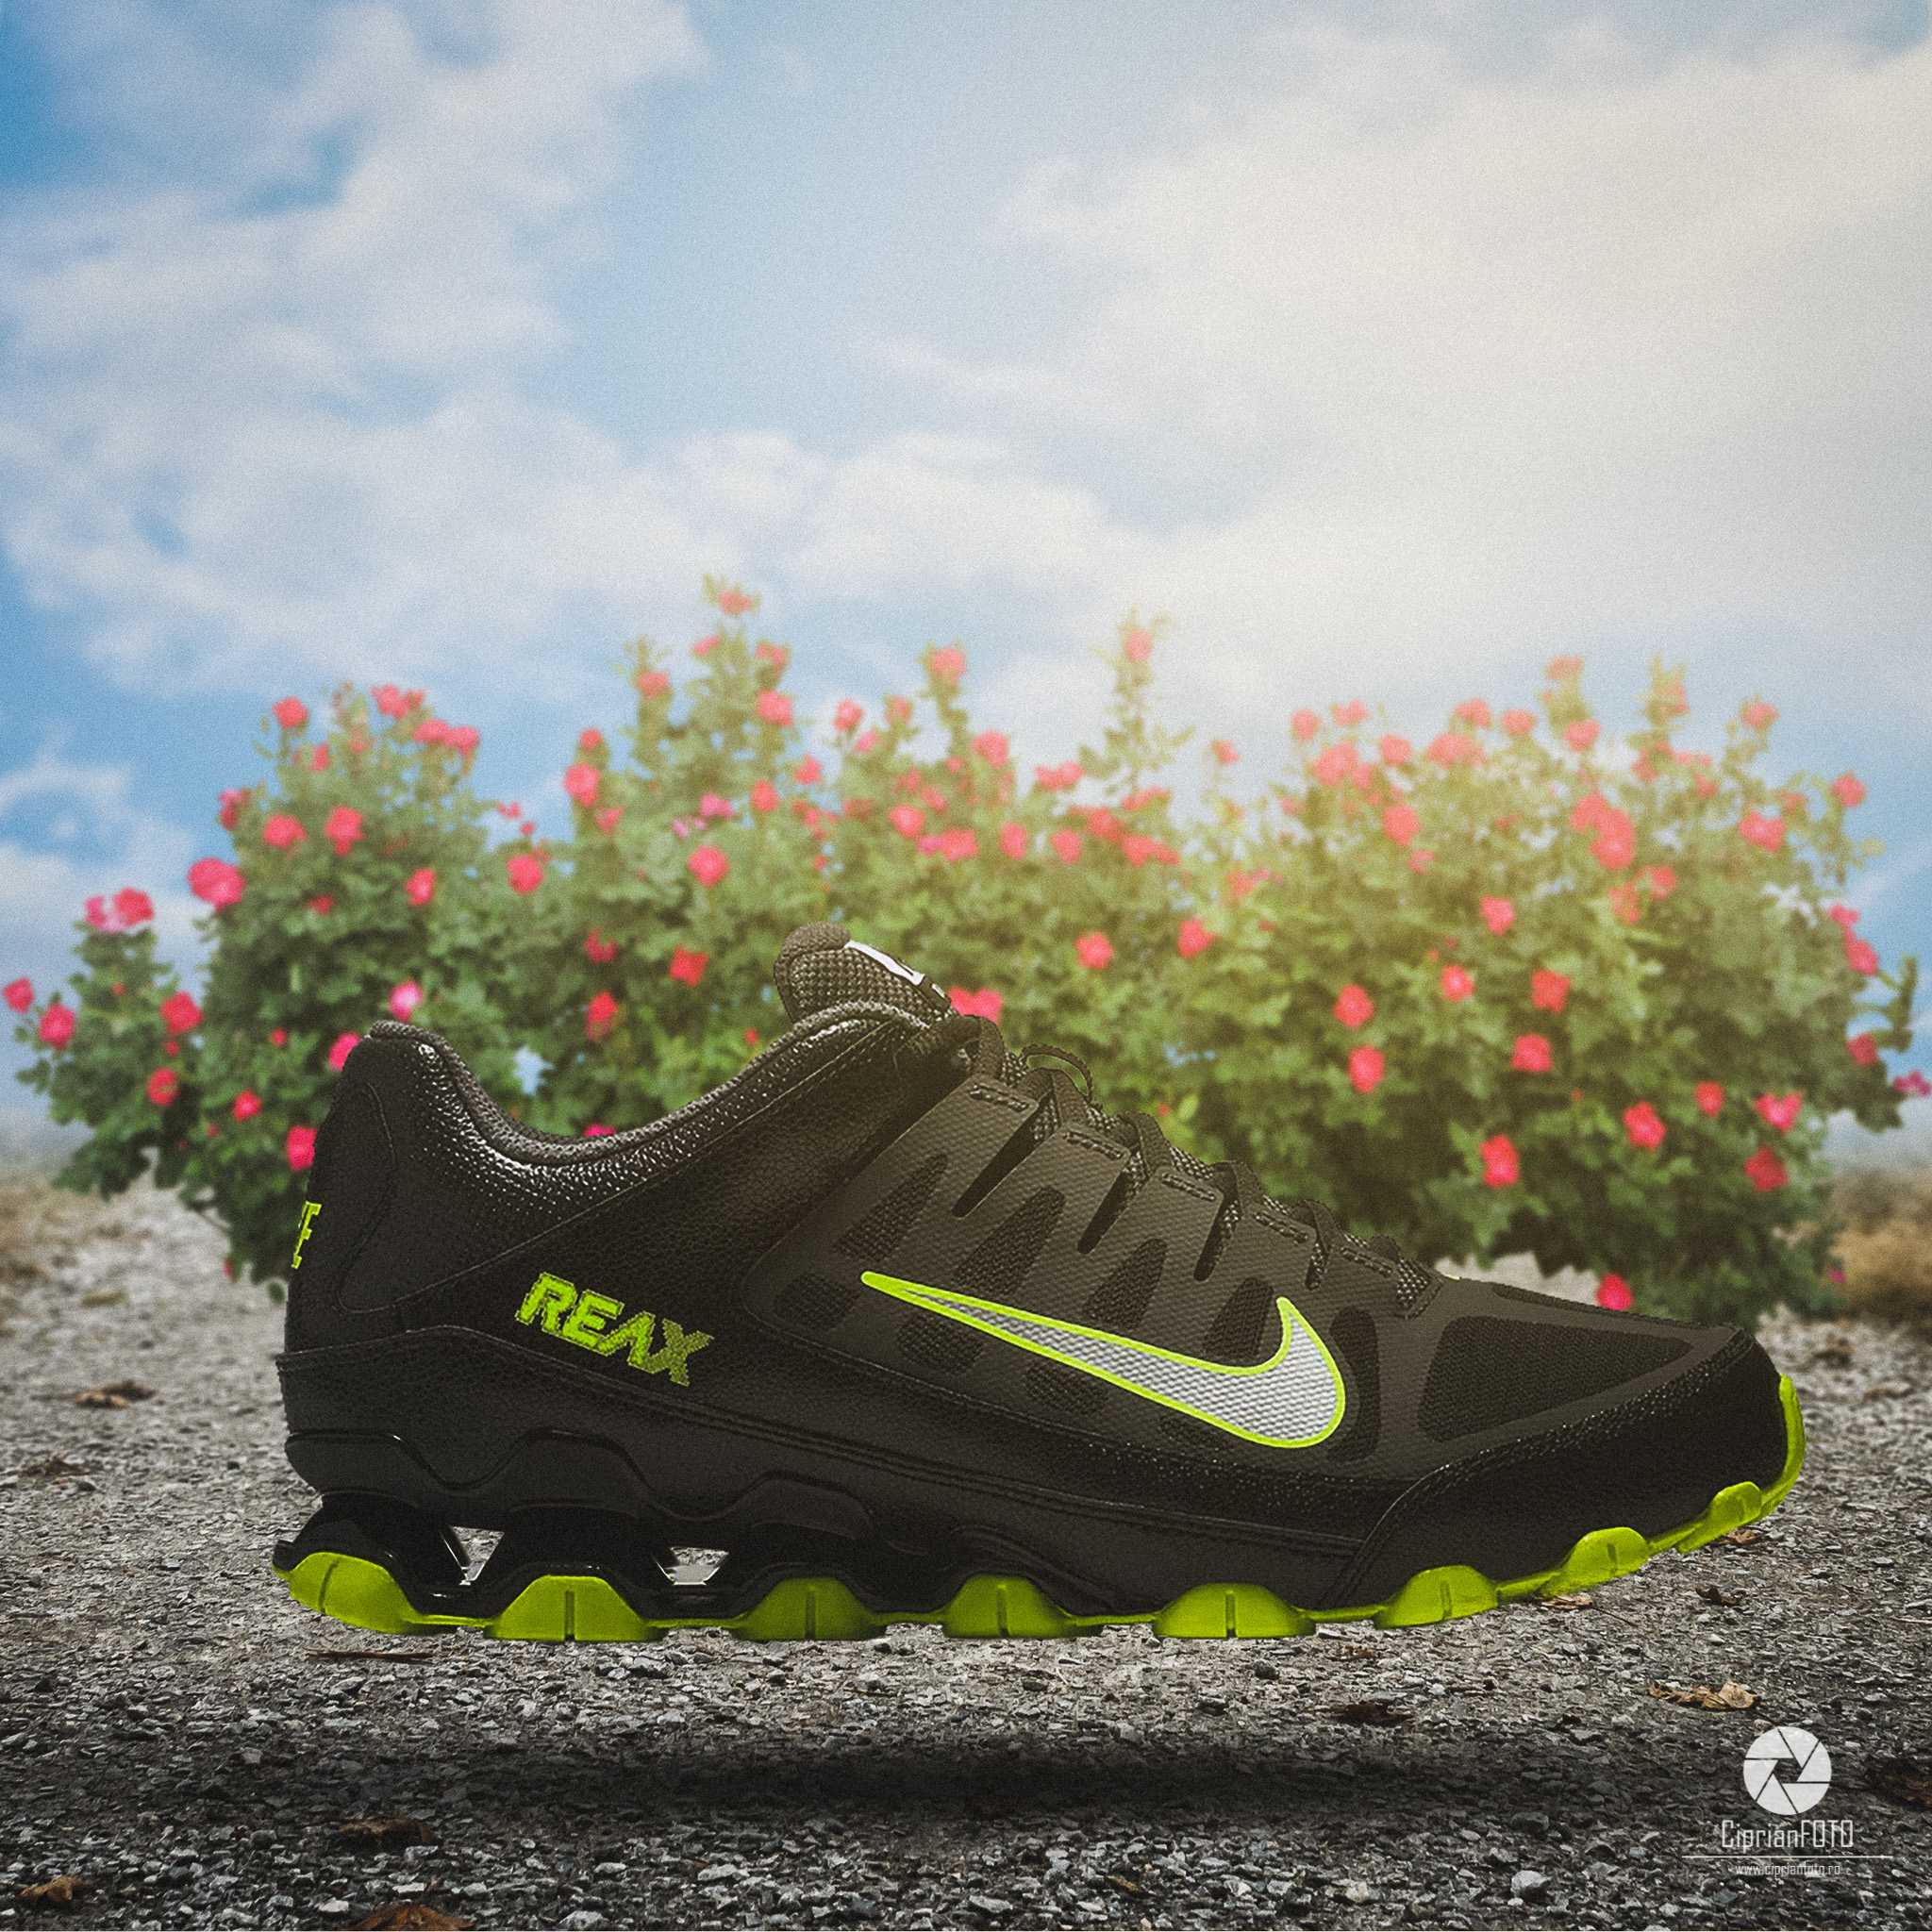 Nike_Reax_Photoshop_Manipulation_Tutorial_CiprianFOTO